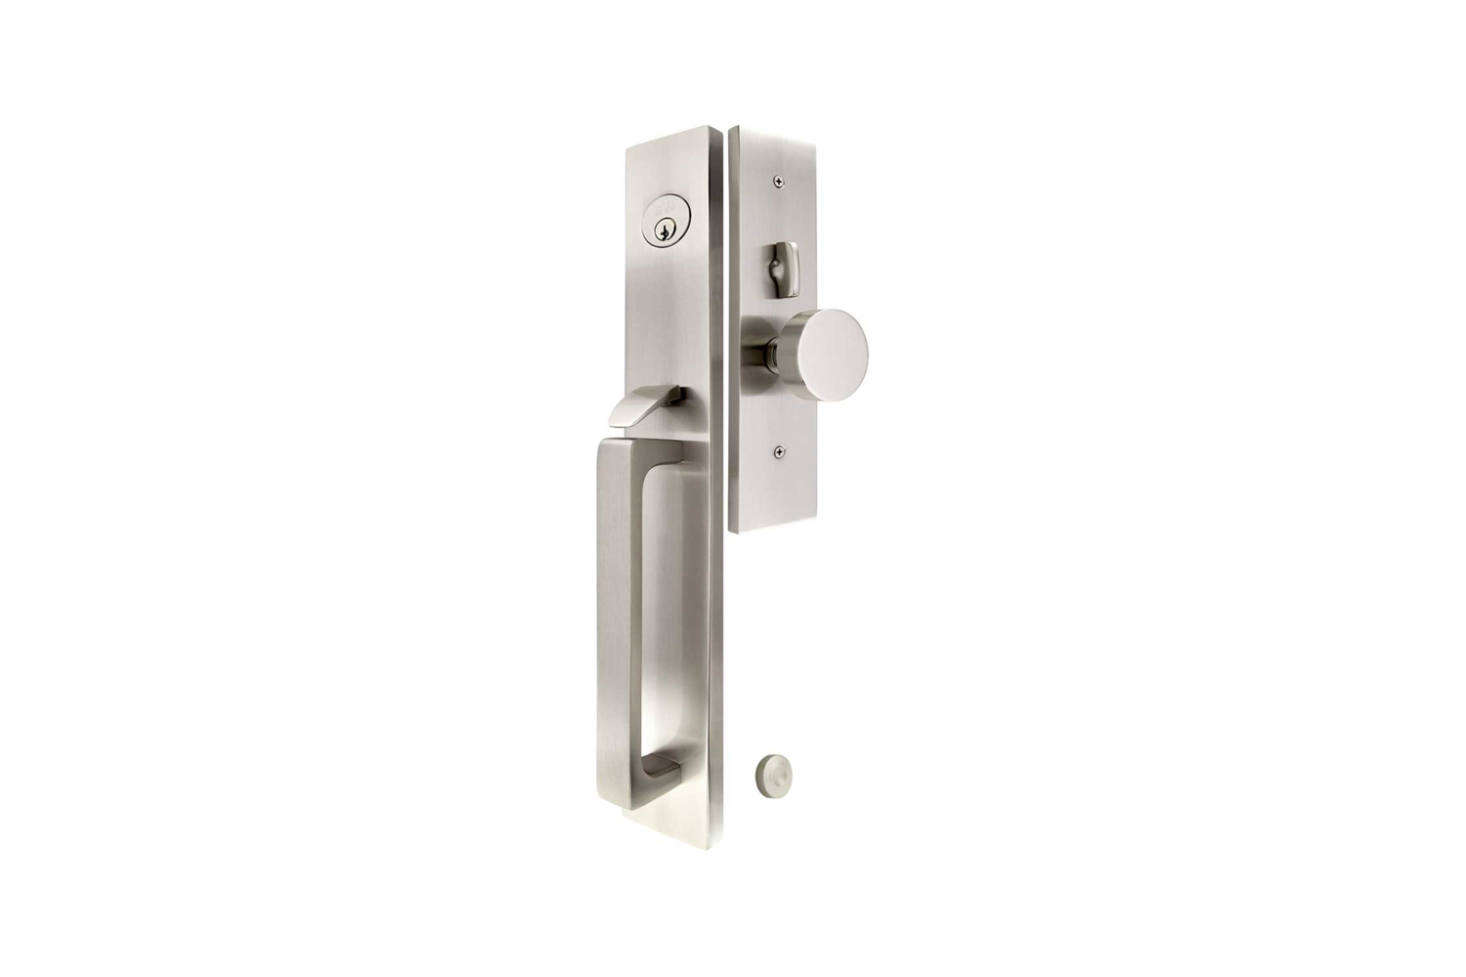 The Lugano Mortoise Entry Set comes with the choice of an interior knob or lever for $6 at House of Antique Hardware.